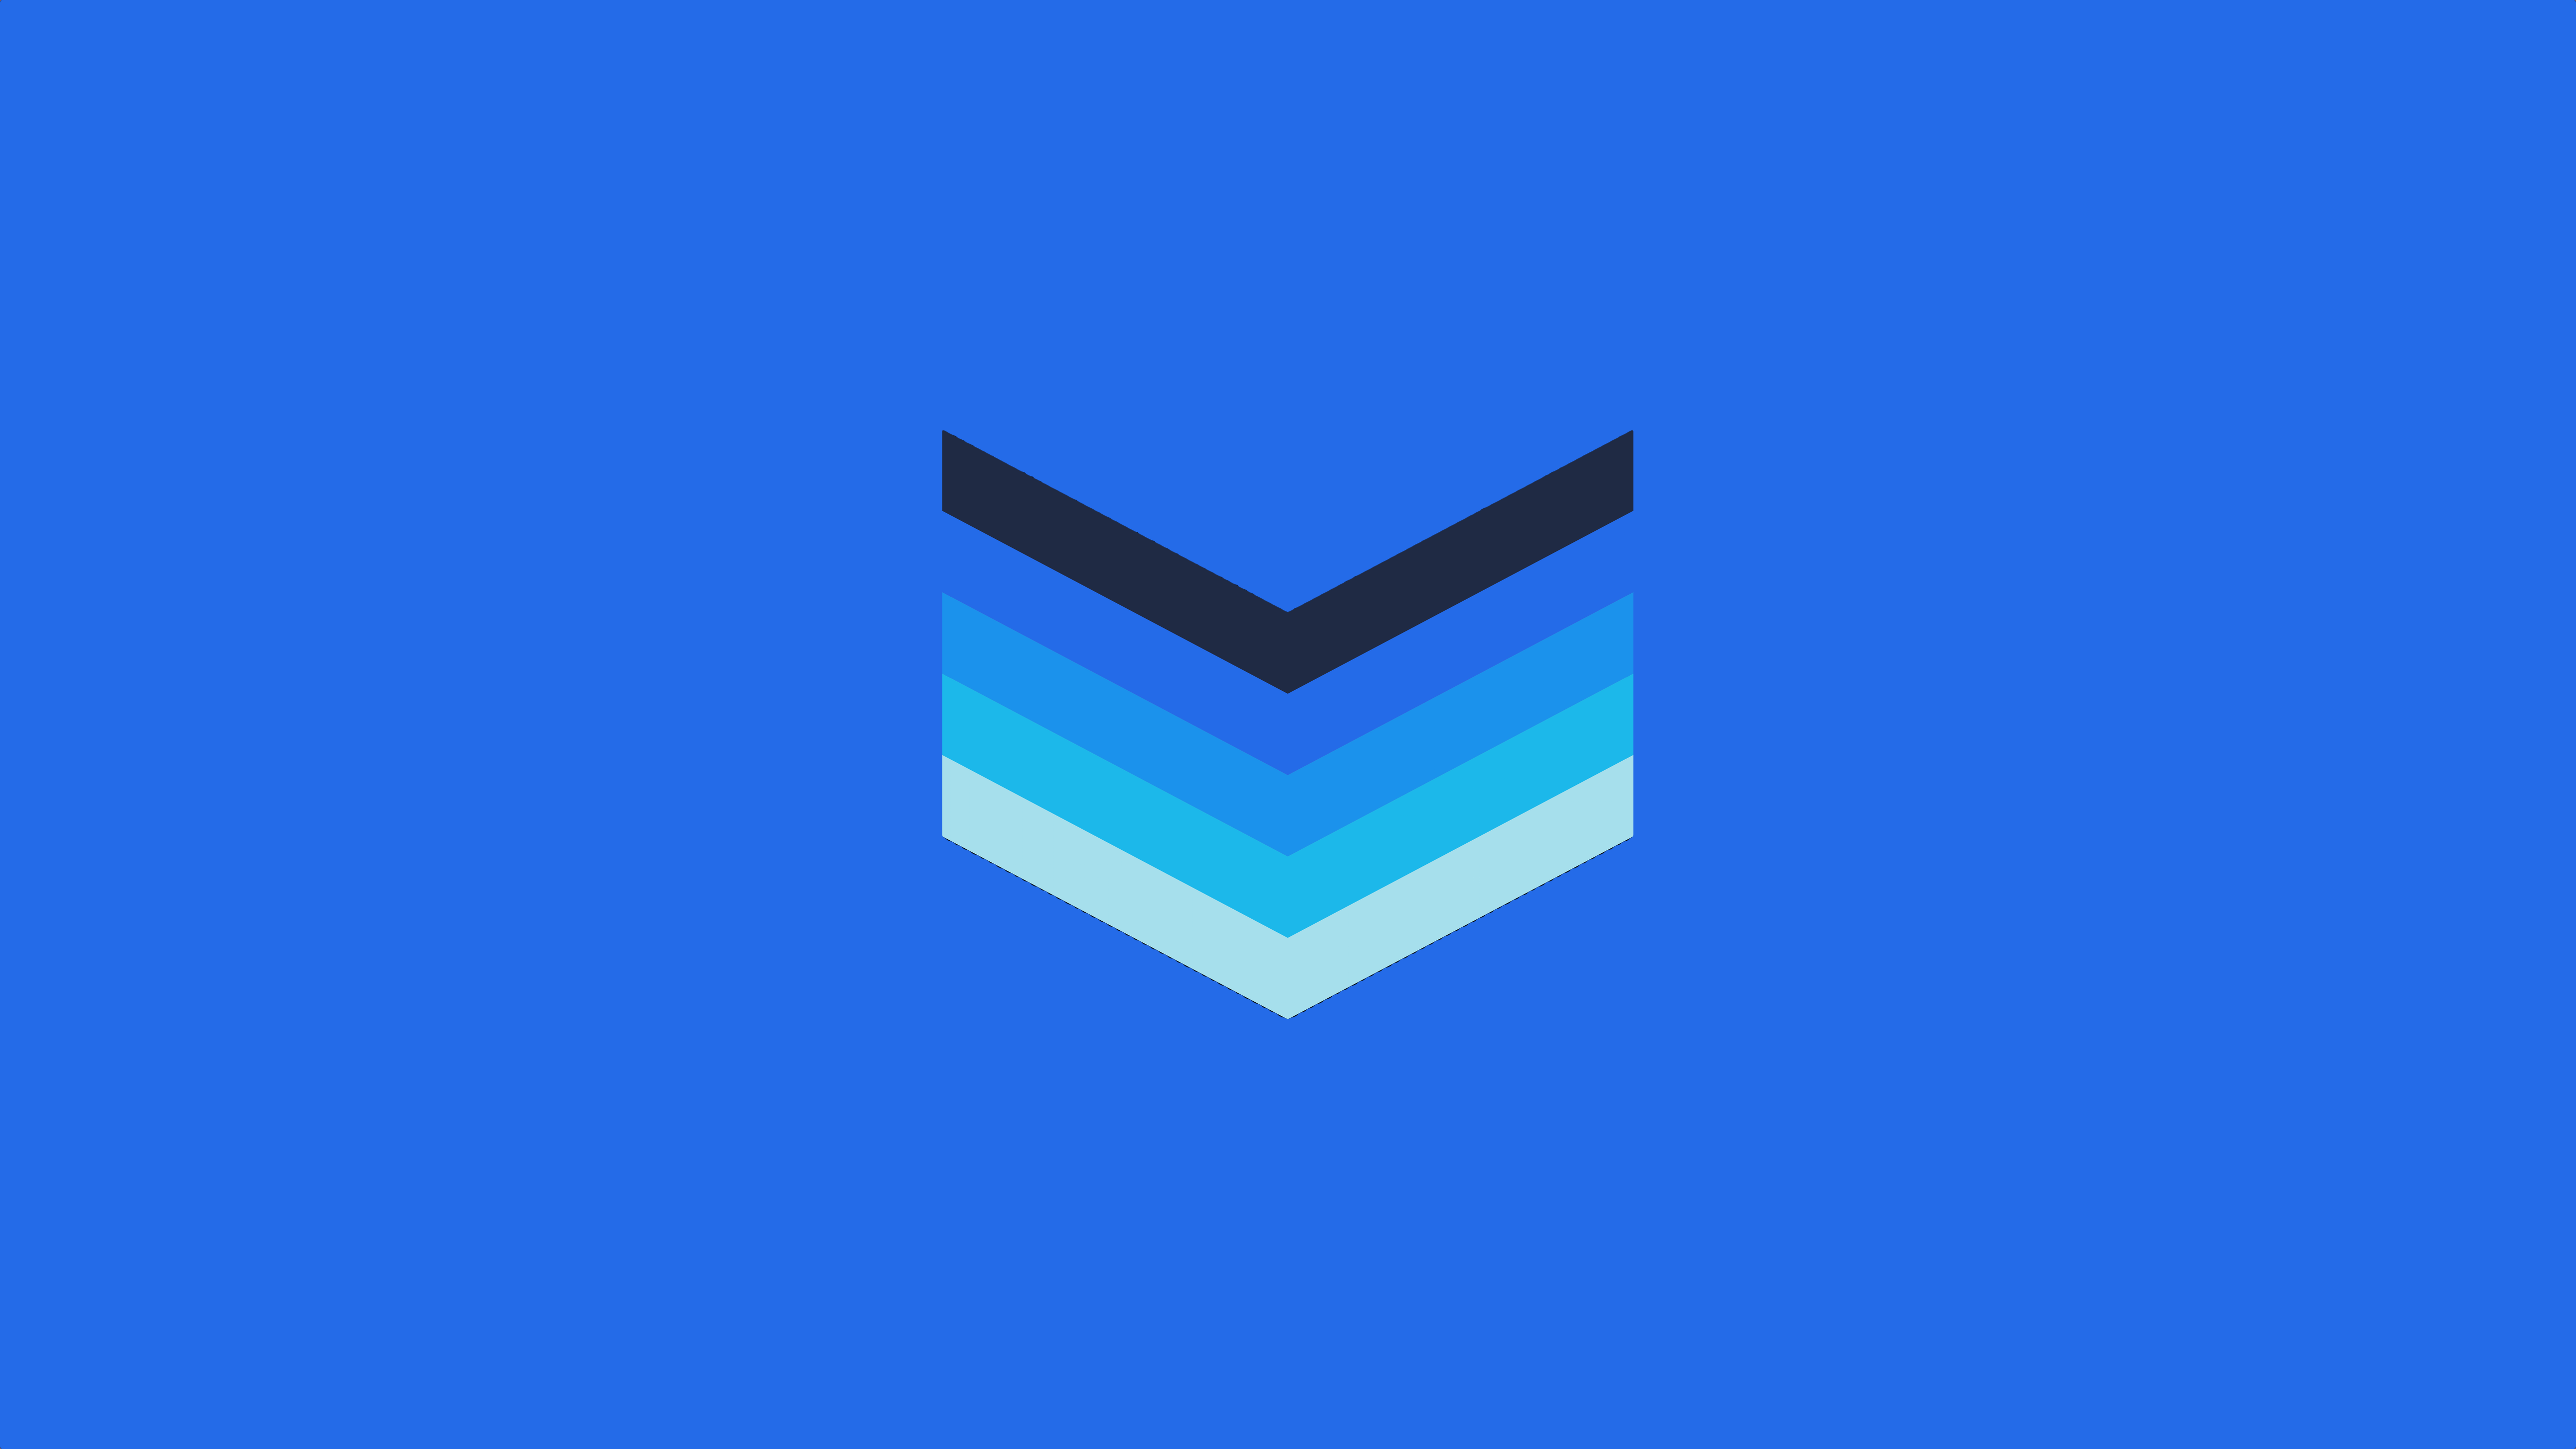 Mkbhd Iphone X Wallpaper Official Mkbhd Wallpapers For Iphone Ipad Amp Desktop Vol 2